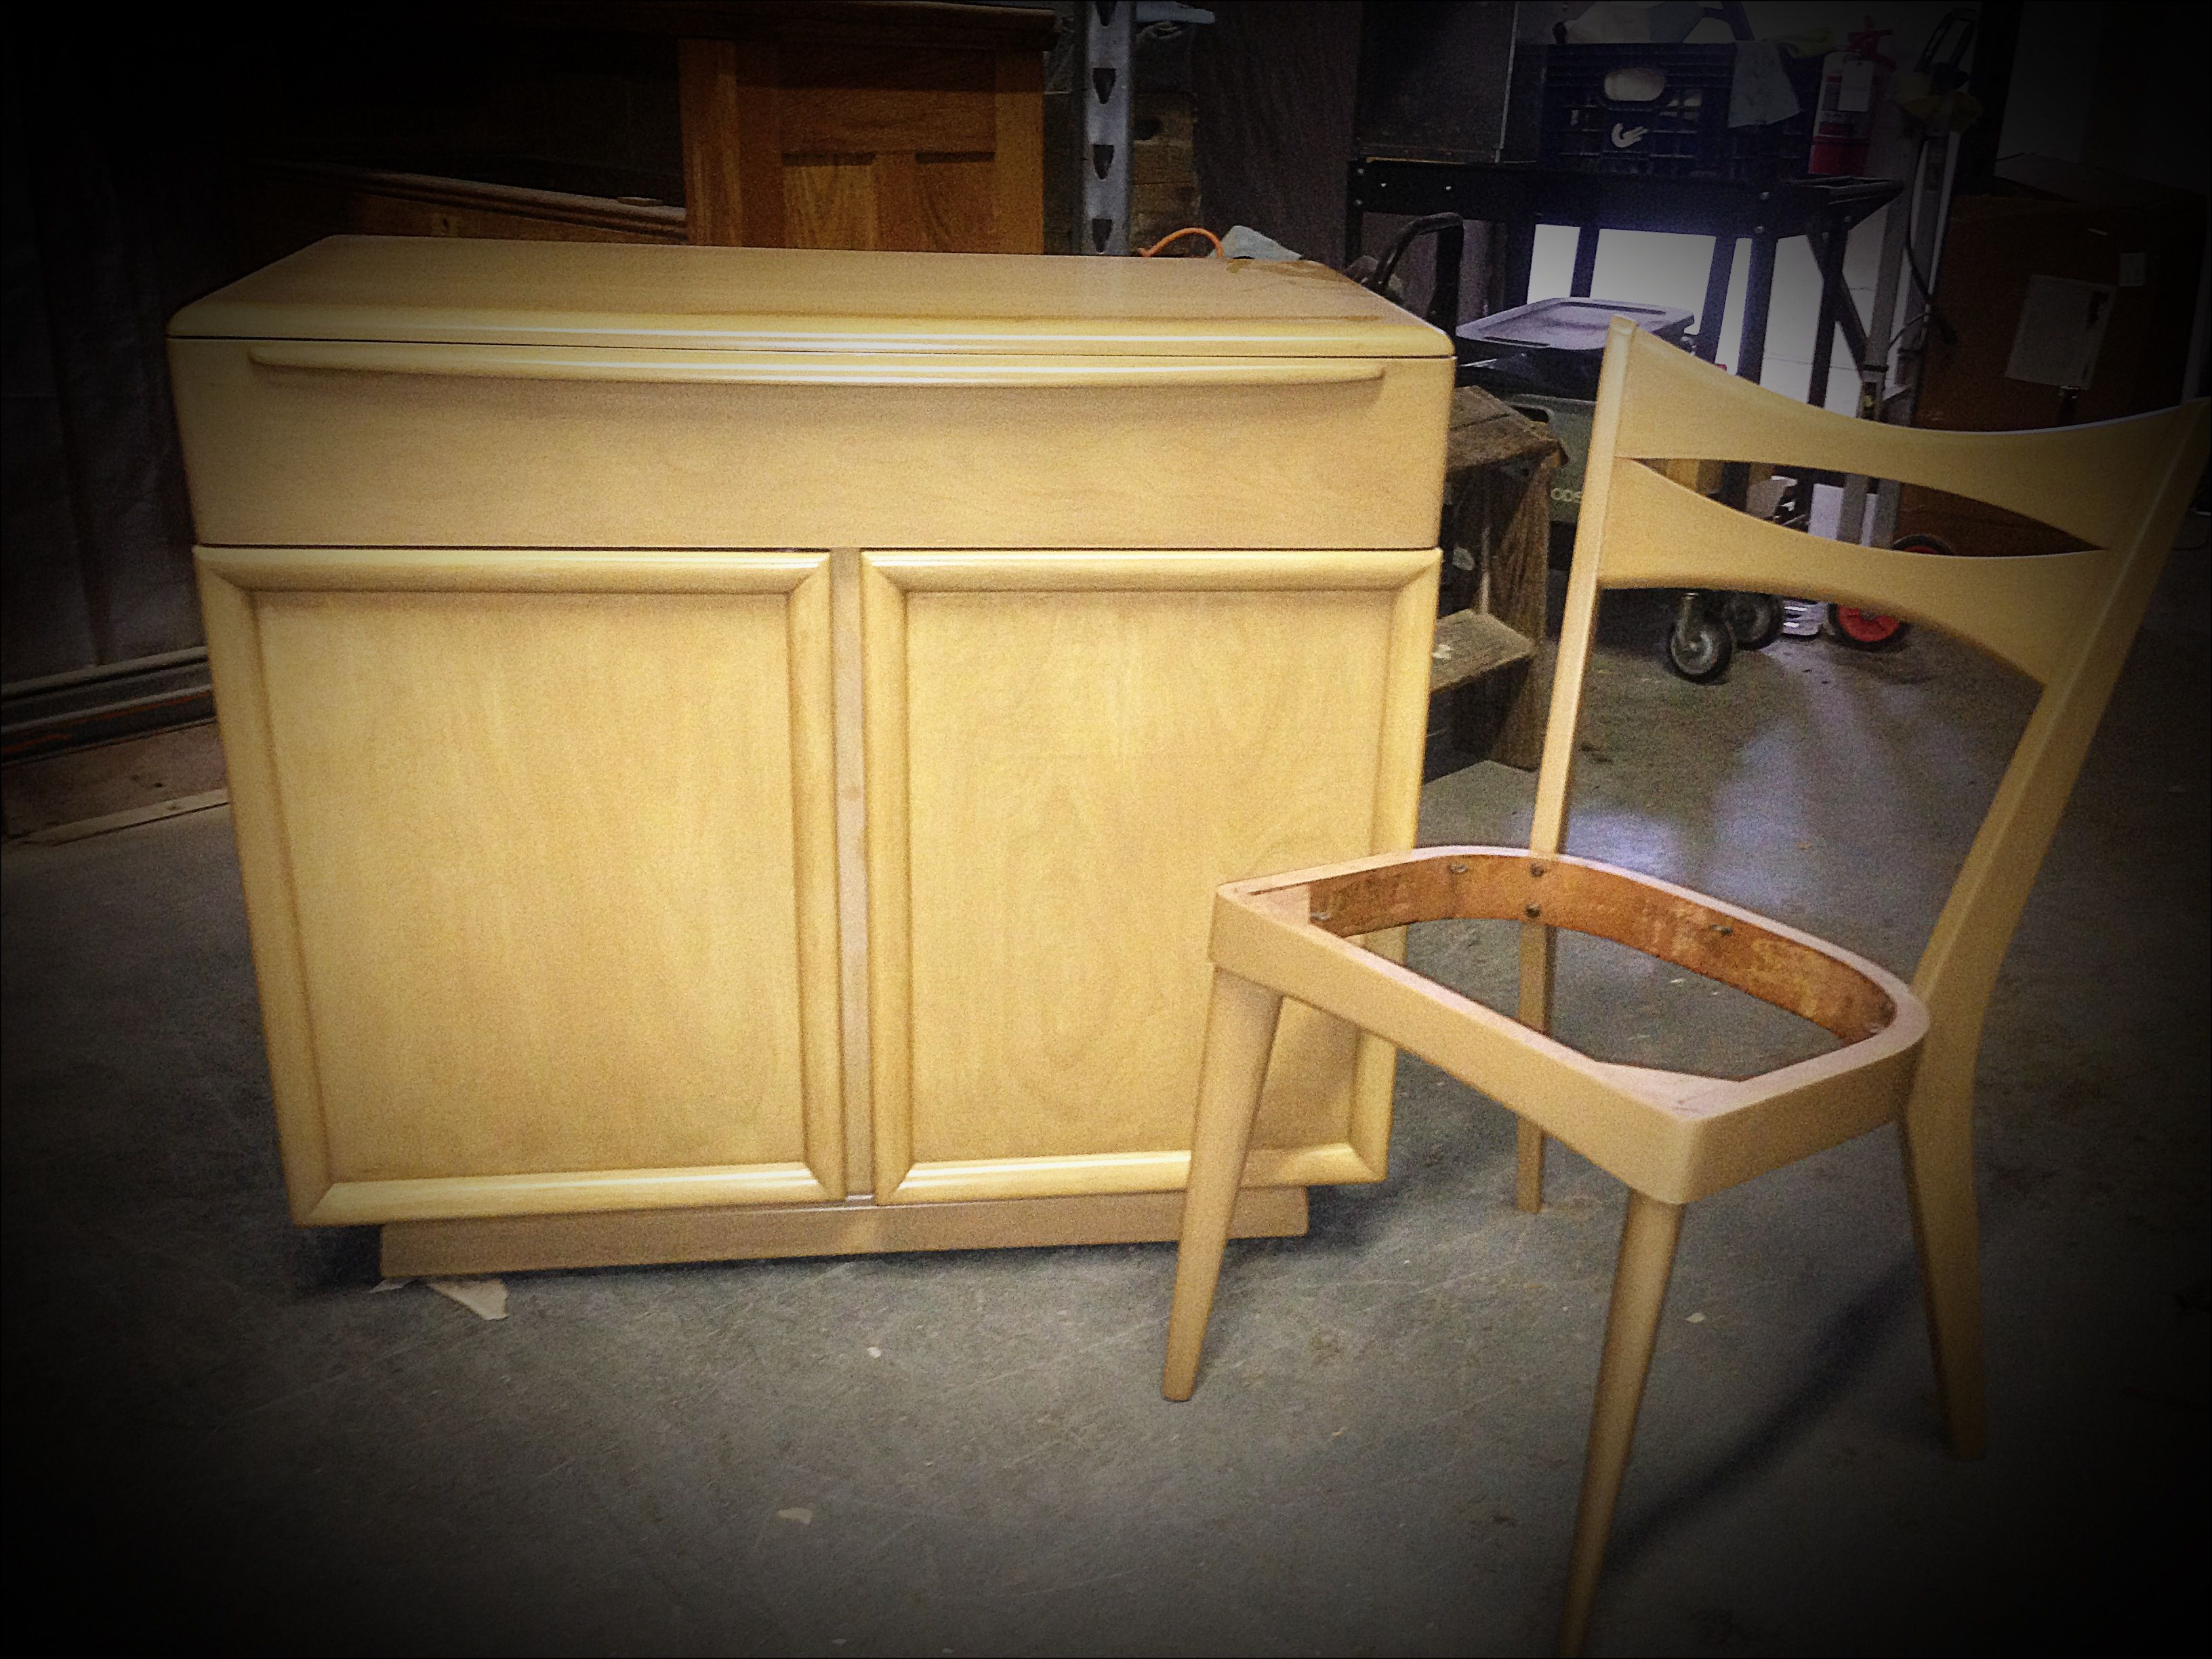 major furniture manufacturers. The Heywood-Wakefield Company Is A US Furniture Manufacturer Established In 1897. It Went On To Become Major Presence And Its Older Products Are Manufacturers